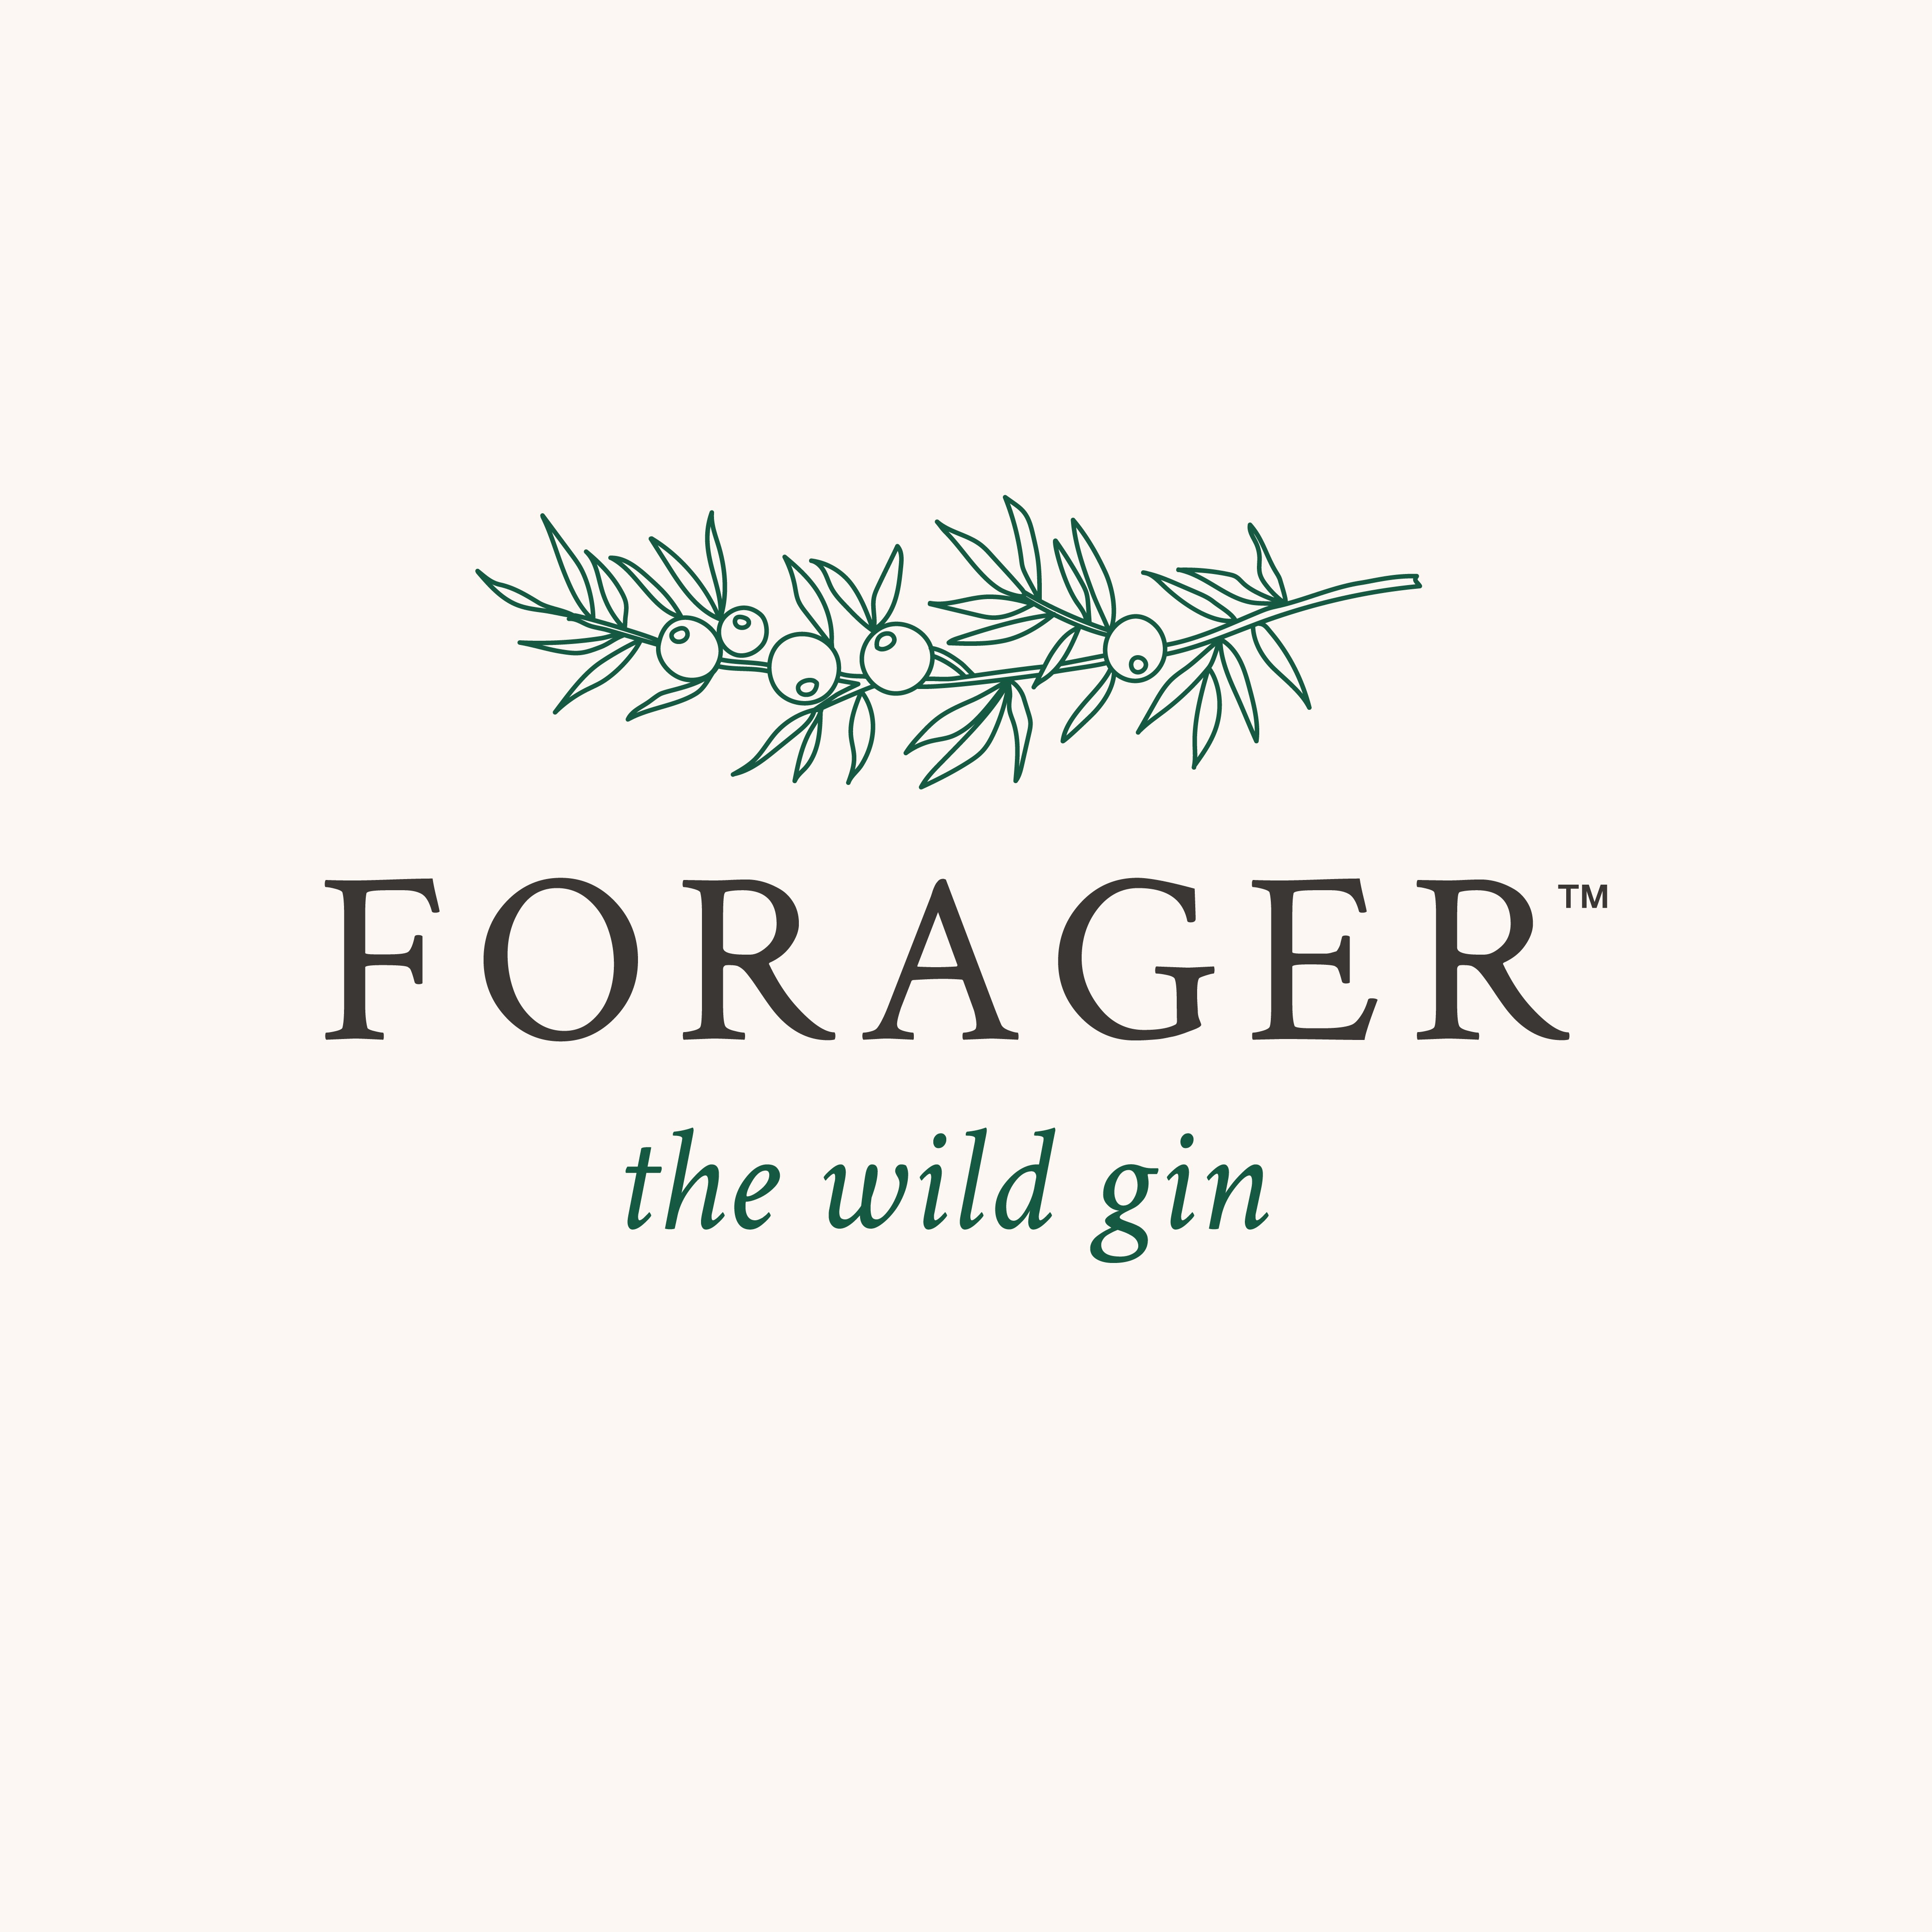 We need a logo for a sustainably packaged and produced American Gin